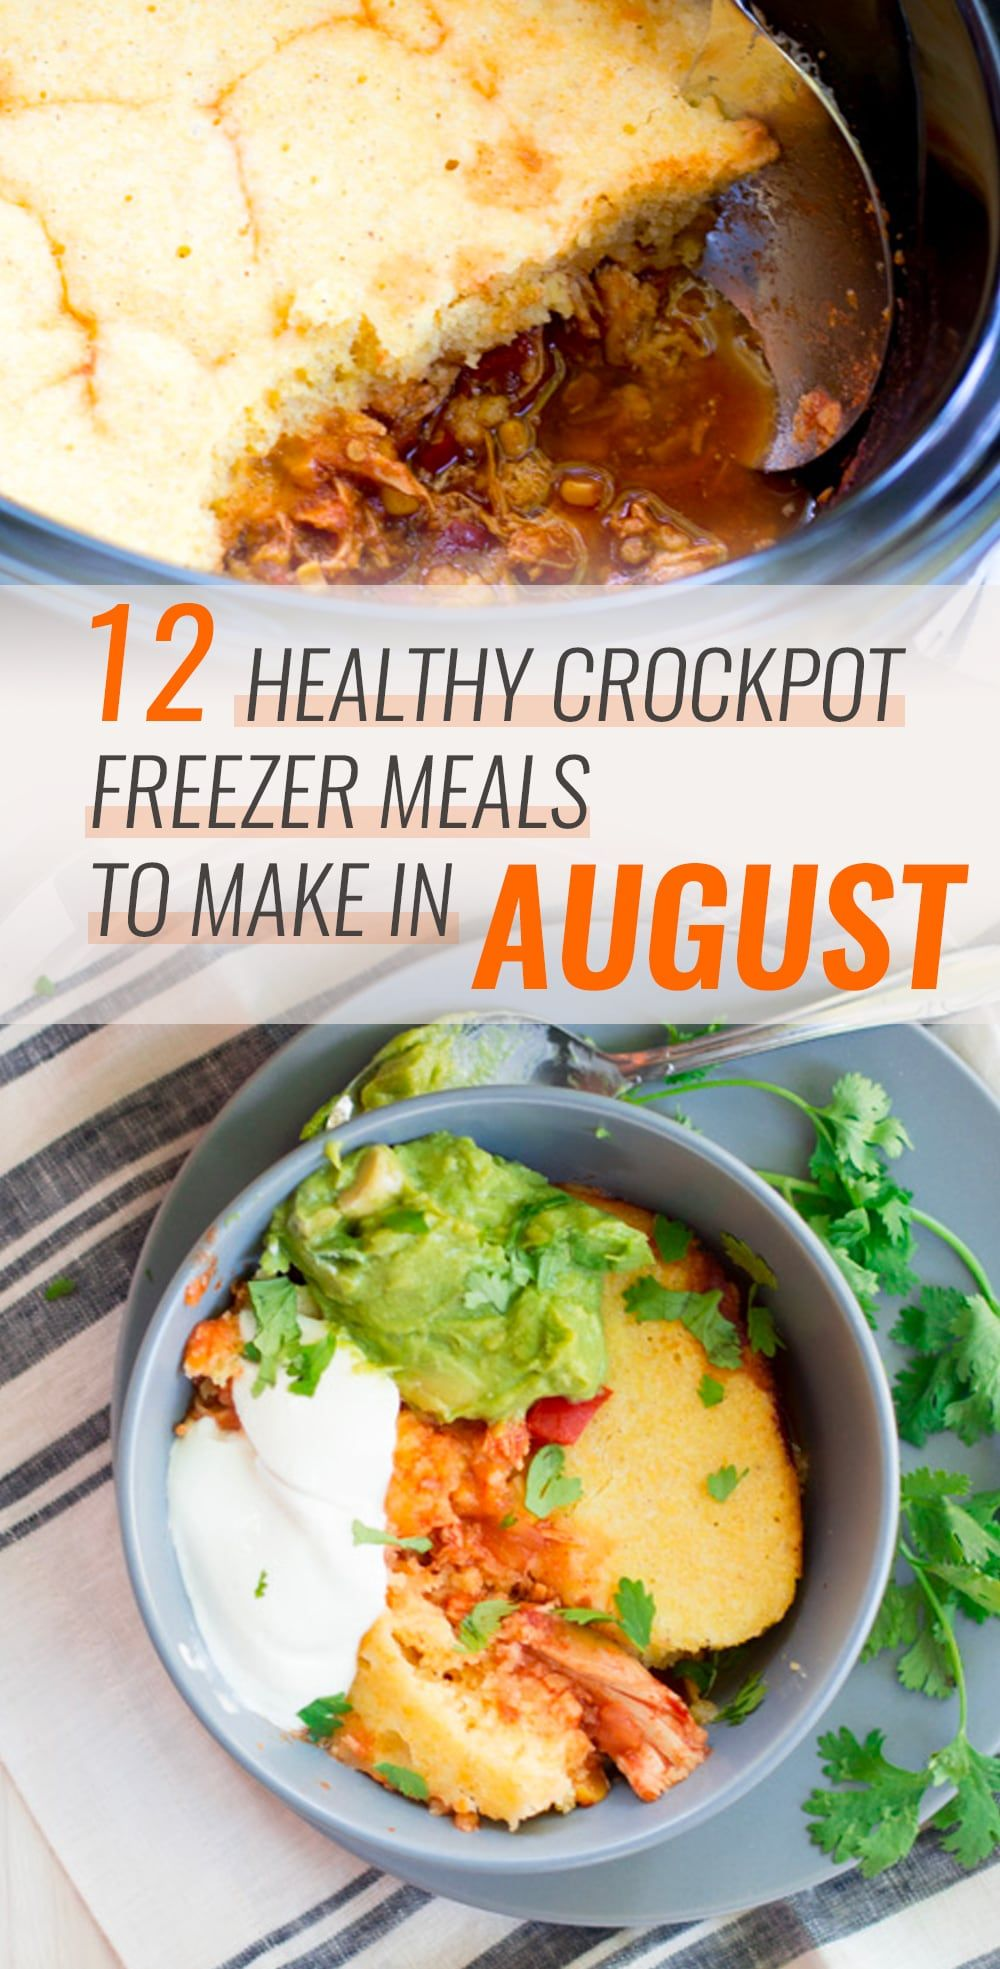 12 Healthy Crockpot Freezer Meals to Make in August #crockpotmeals